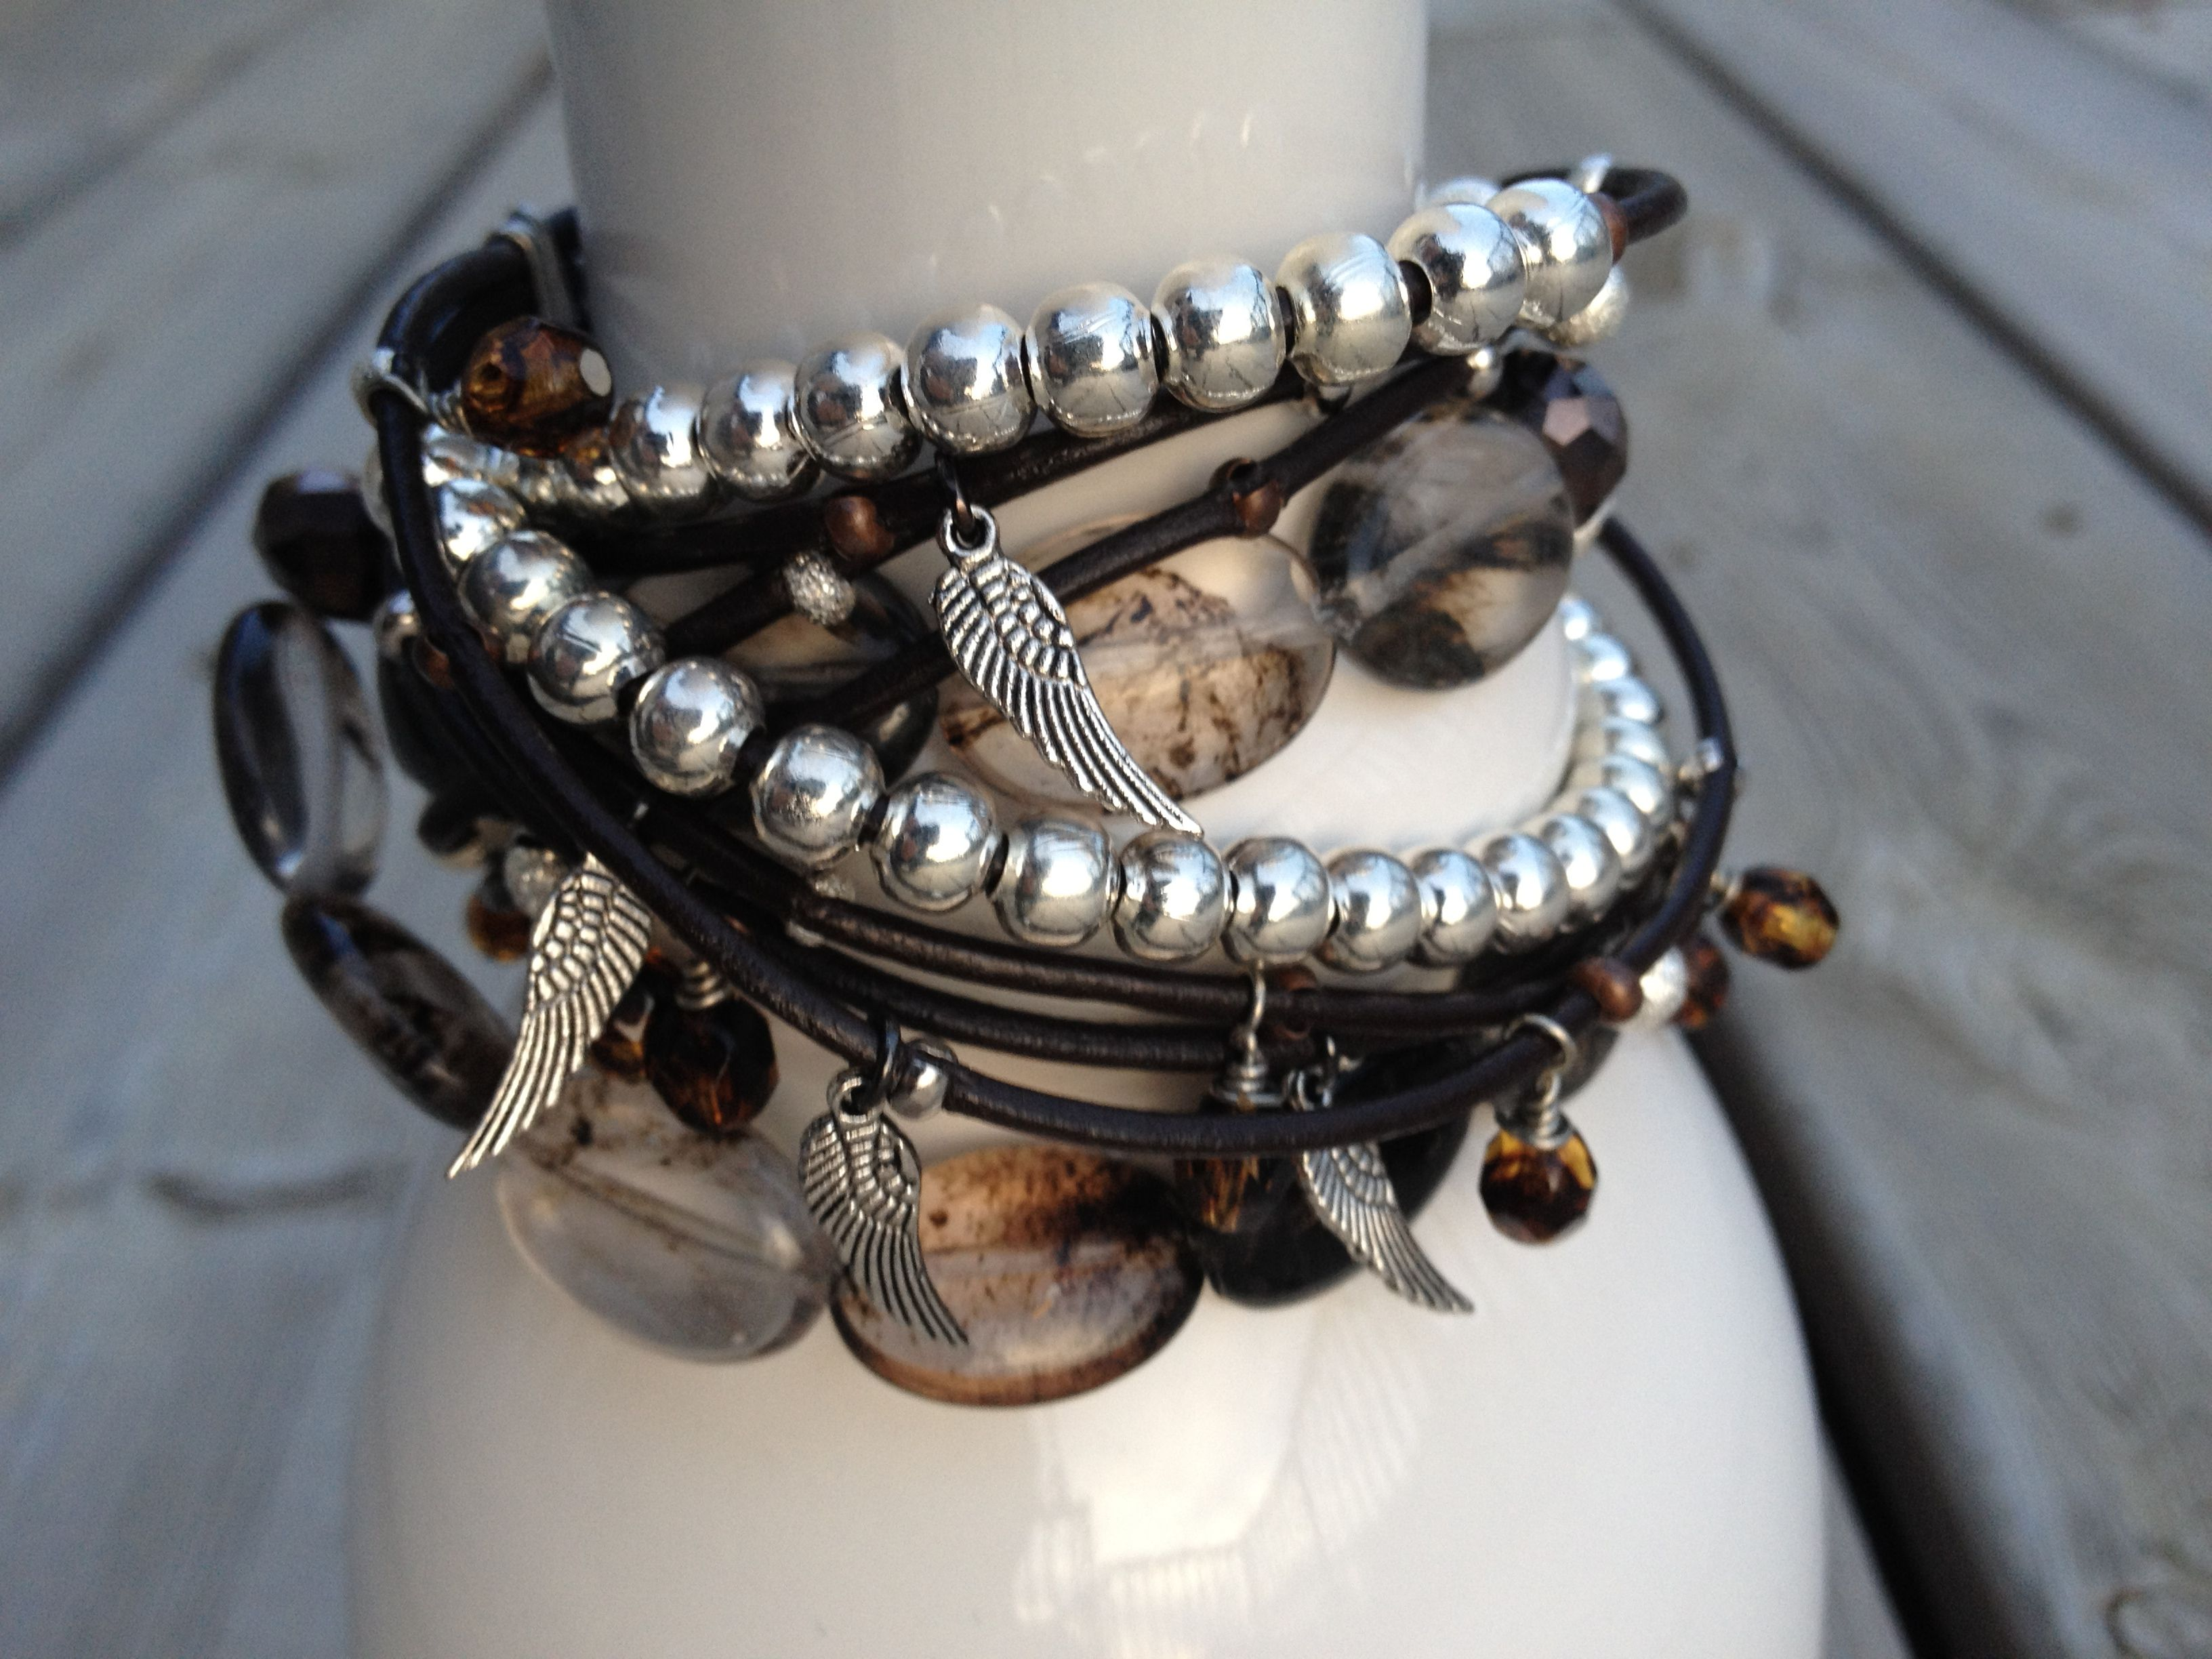 Breathe jewels... Check out my Facebook page.